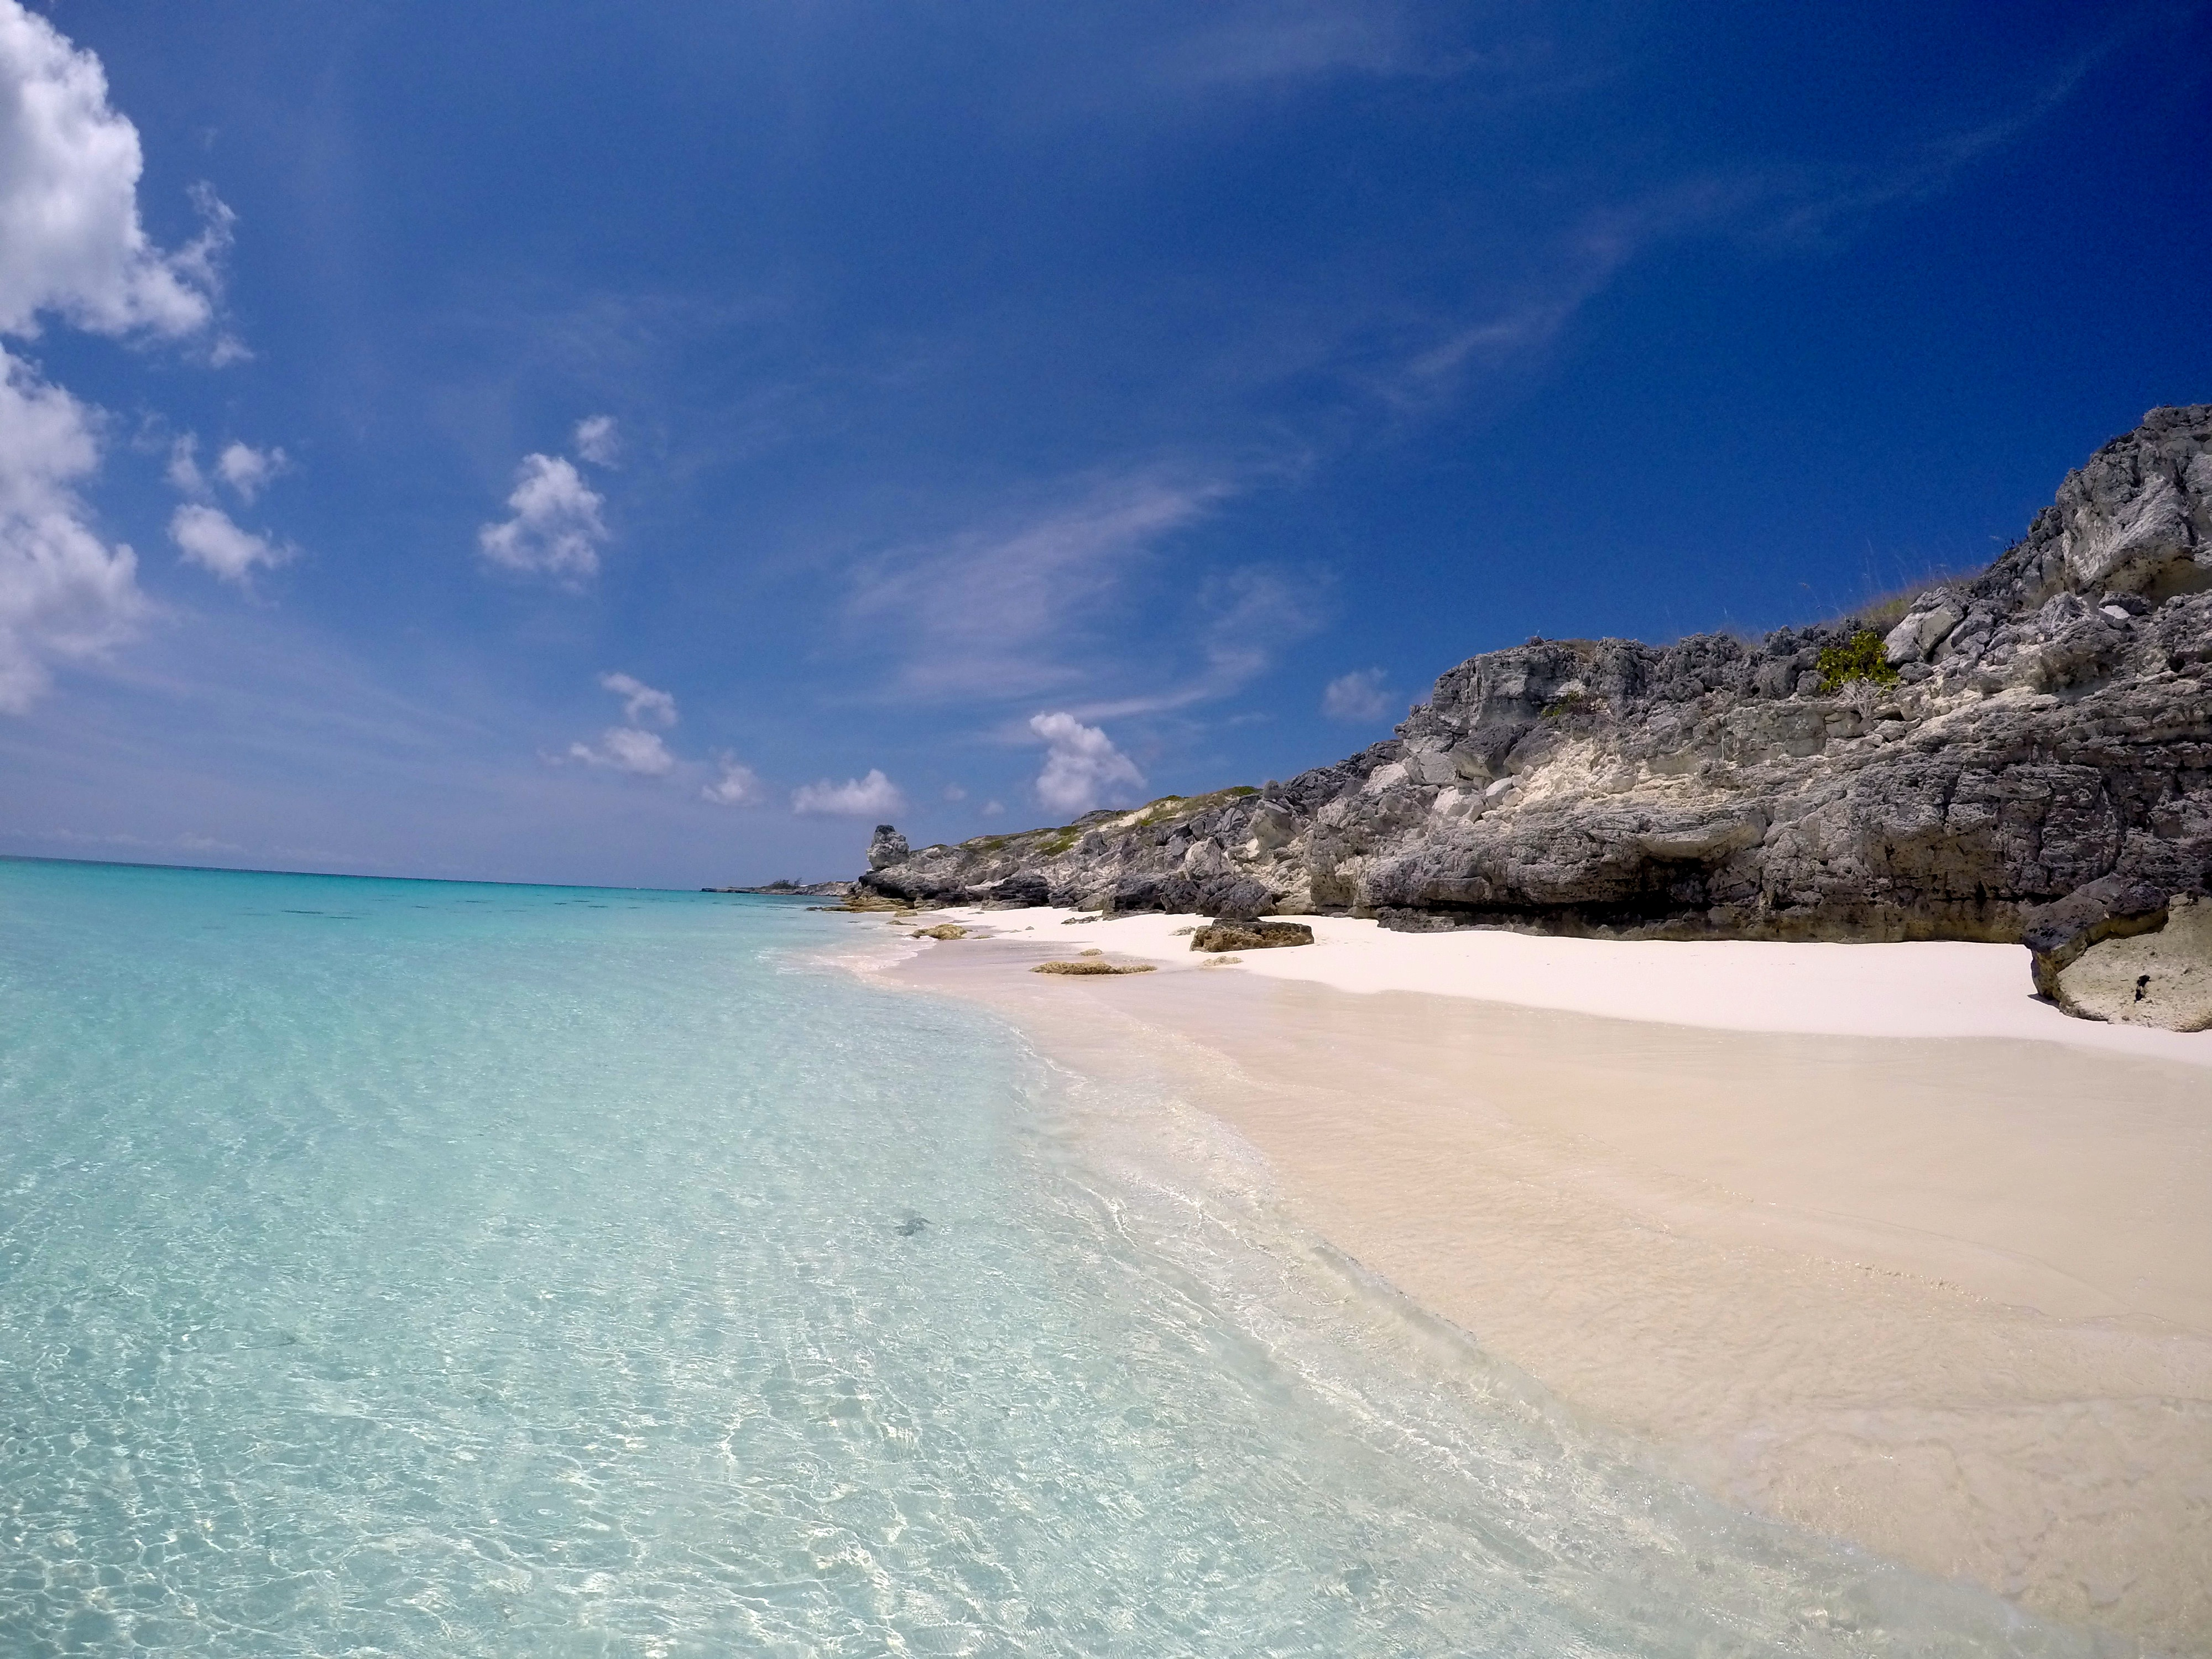 Spend Your Honeymoon in the Turks and Caicos Islands